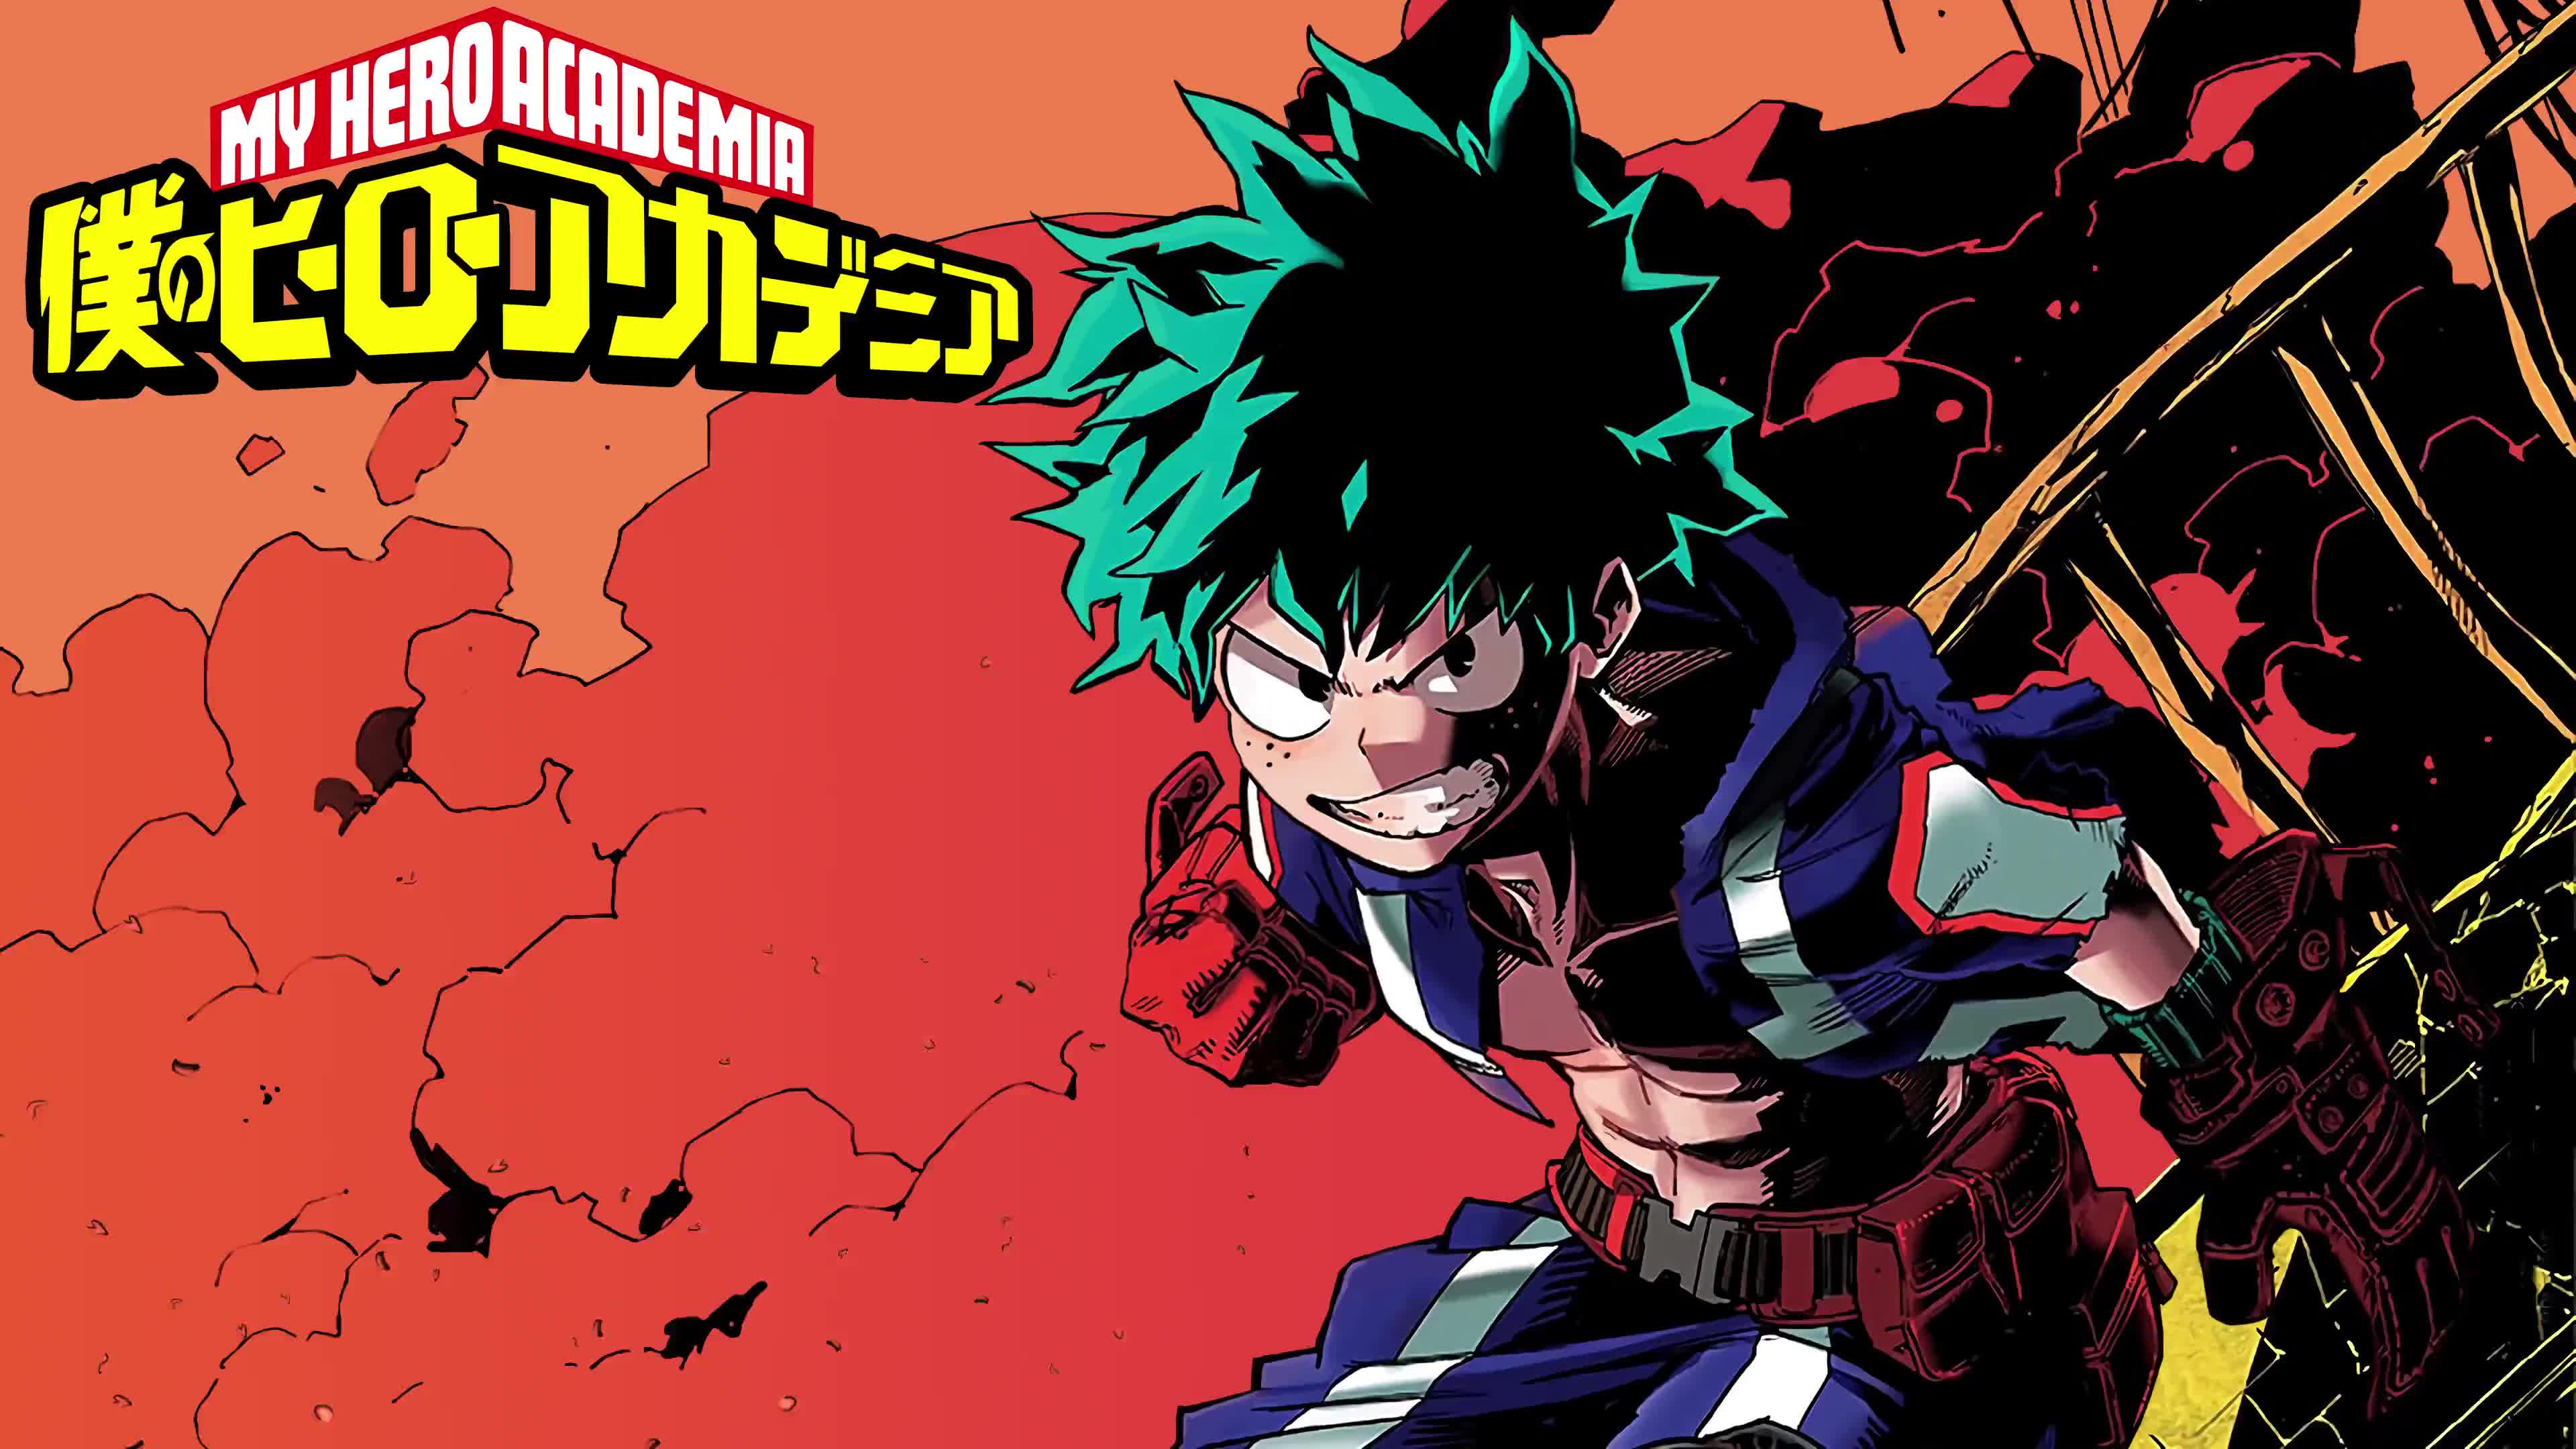 Download and use my hero academia wallpaper to make your. My Hero Academia All Might 4K Wallpapers - Top Free My ...